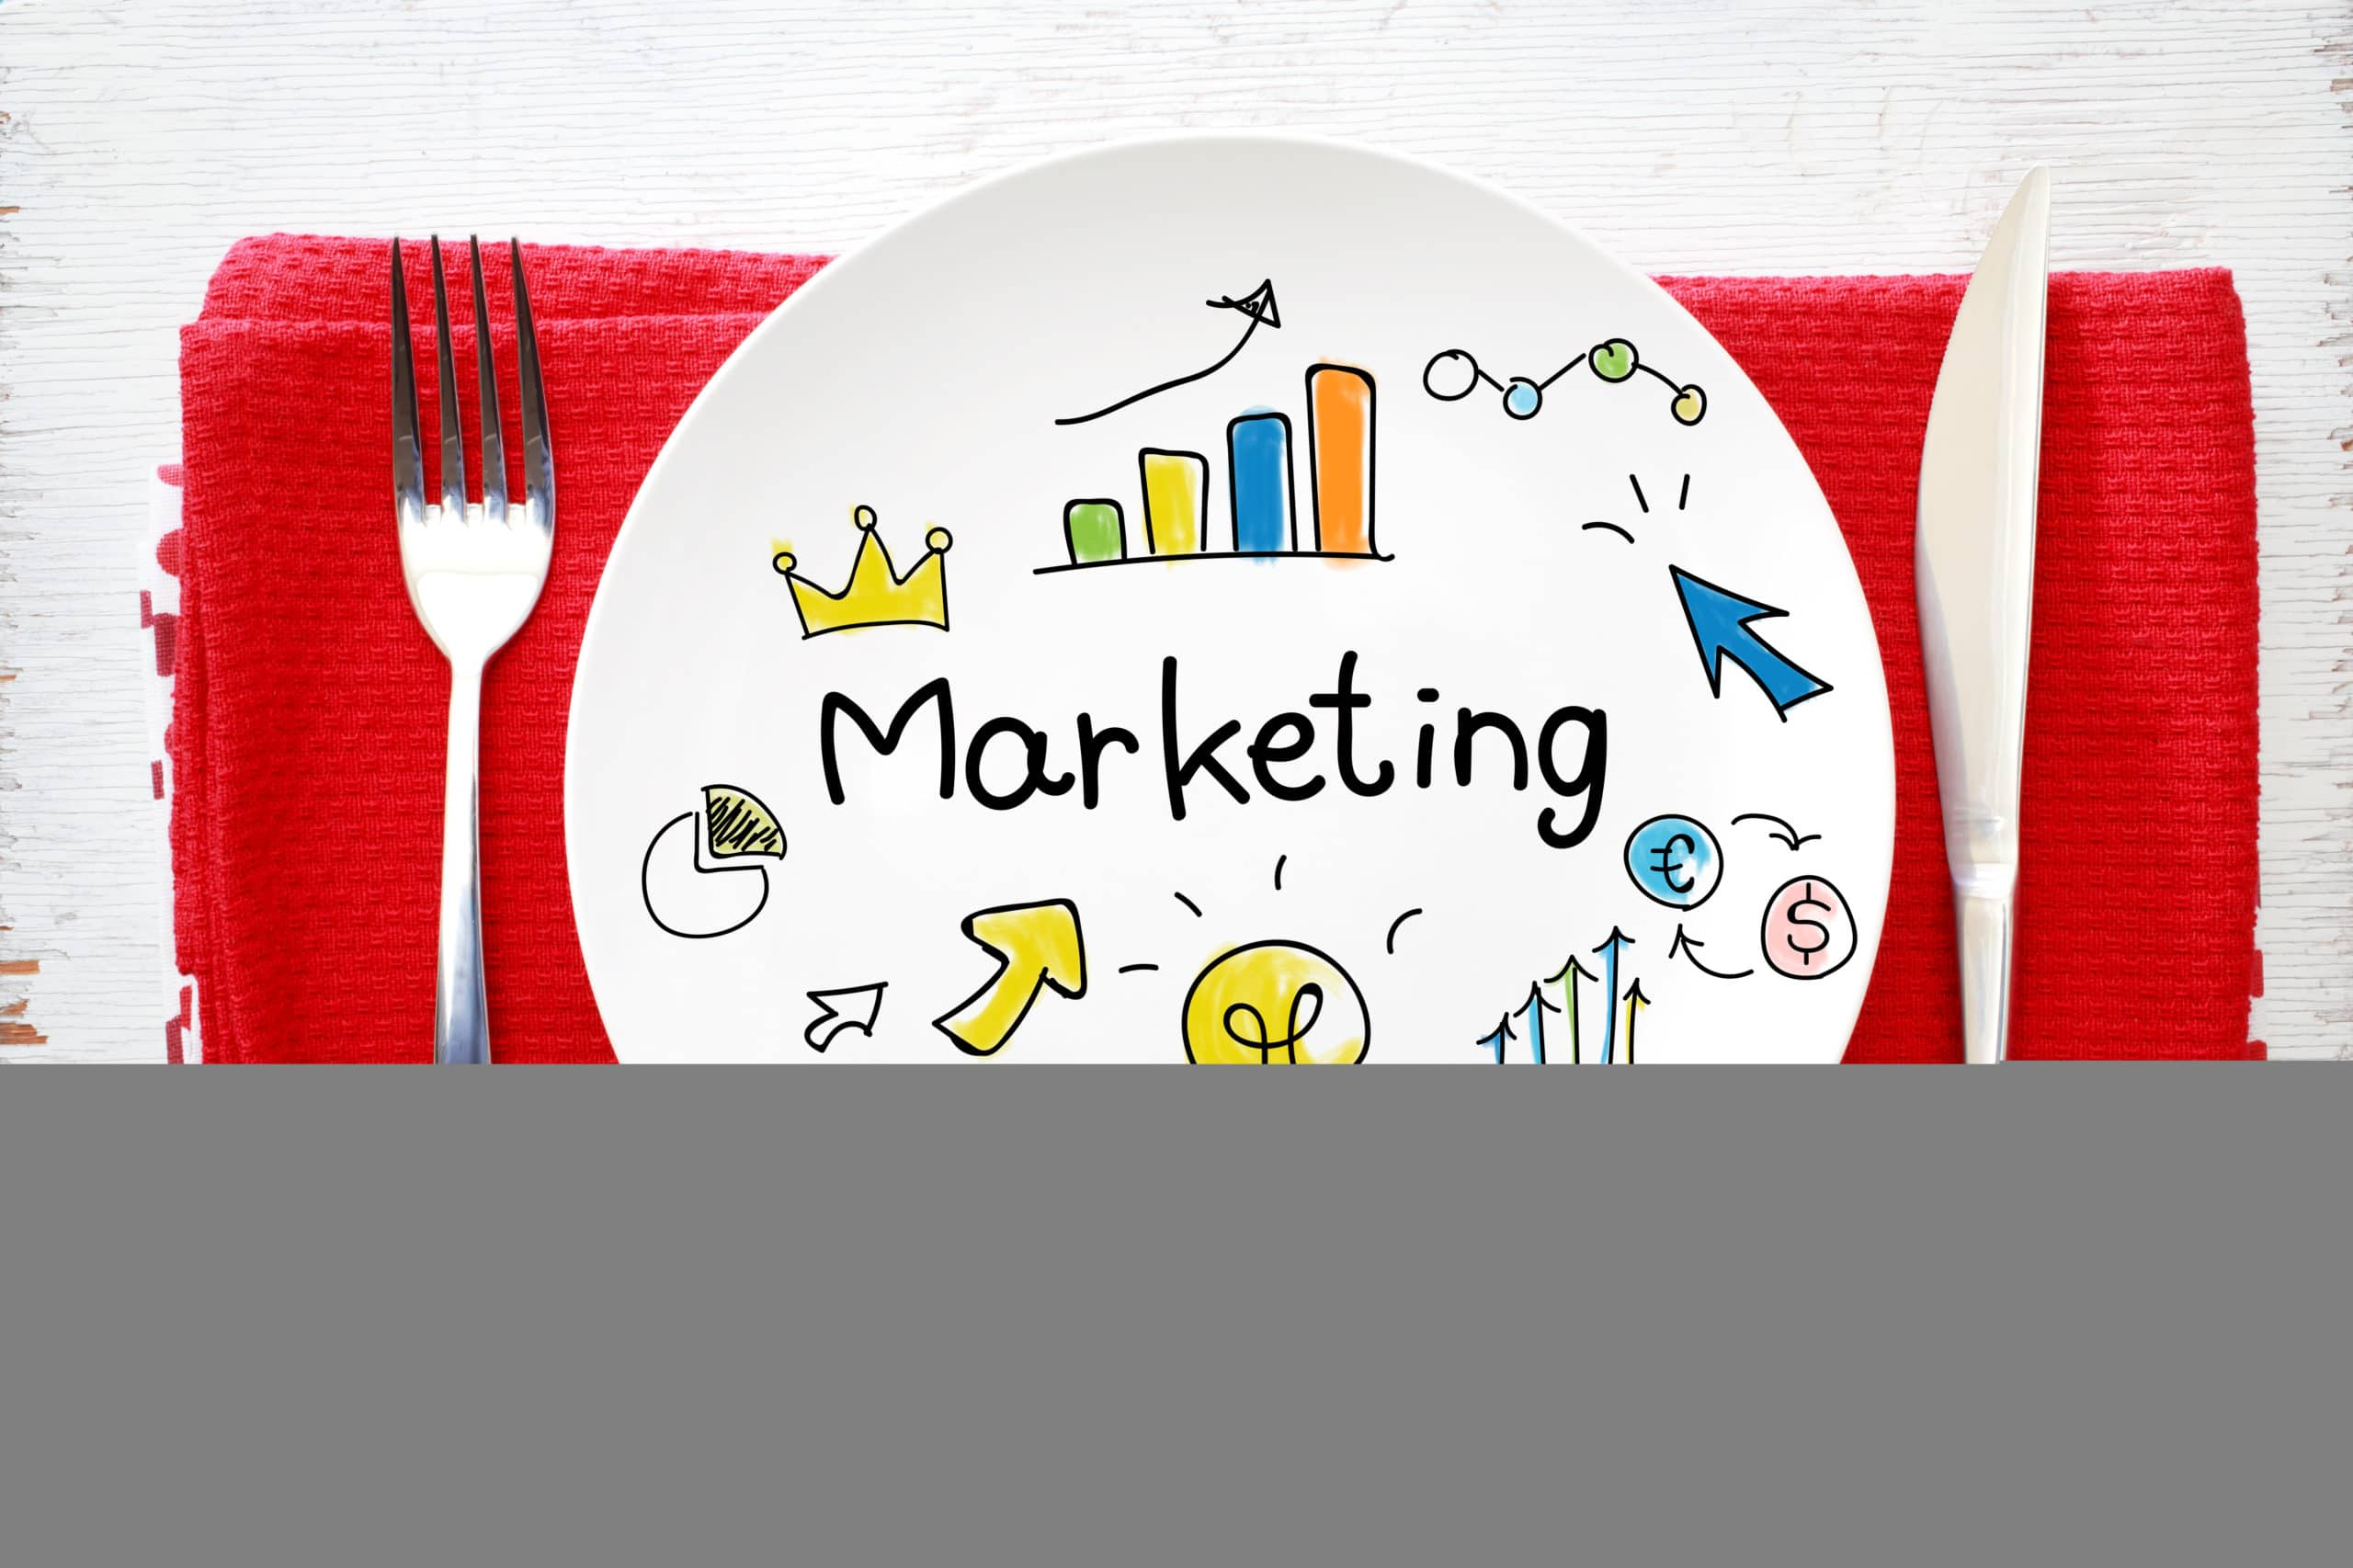 Marketing is worth your time and money